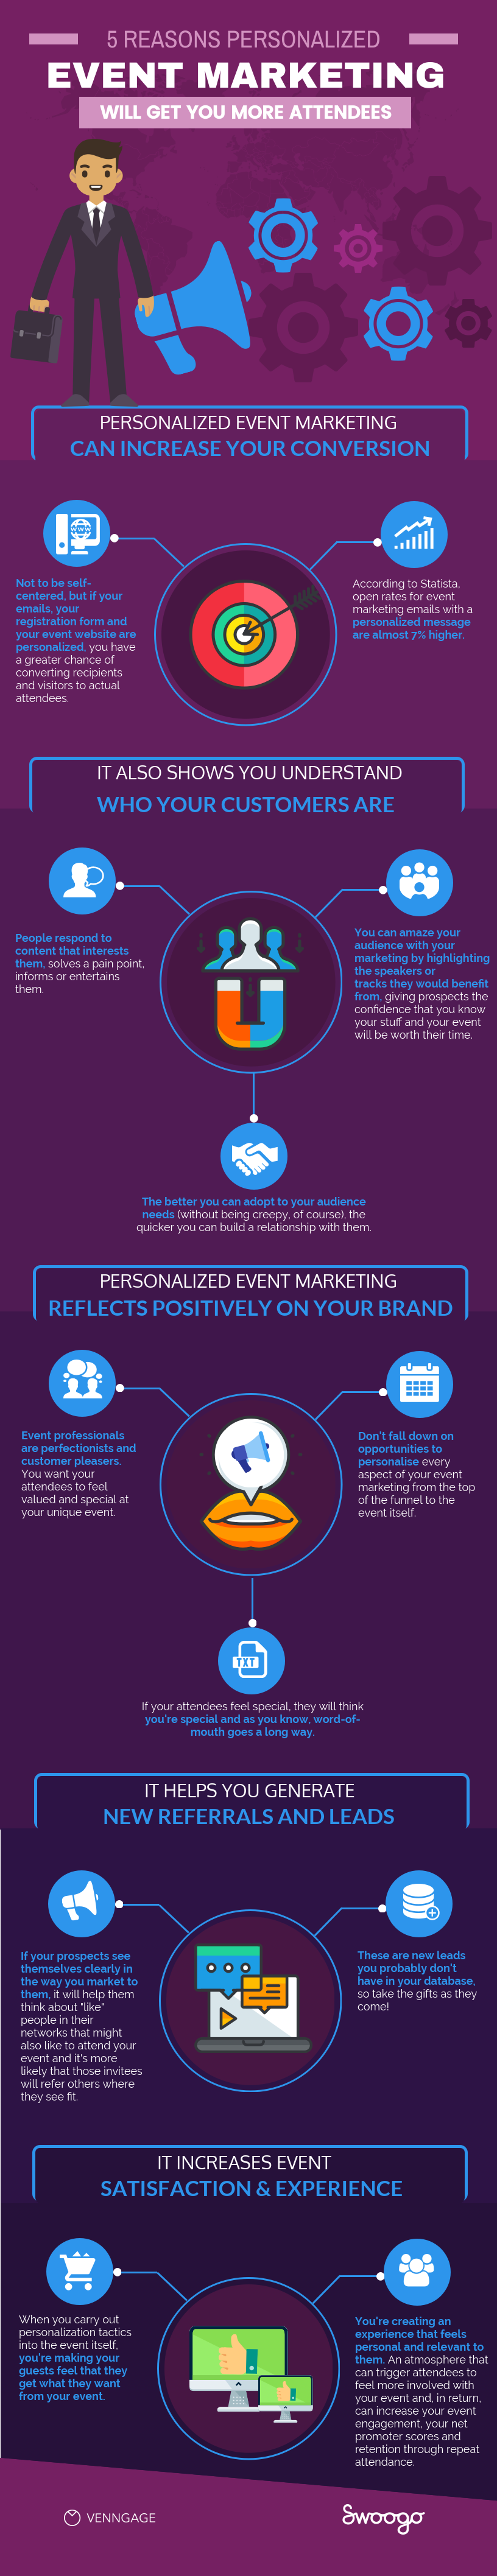 5-reasons-personalized-event-marketing-infographic-Swoogo-Venngage.png